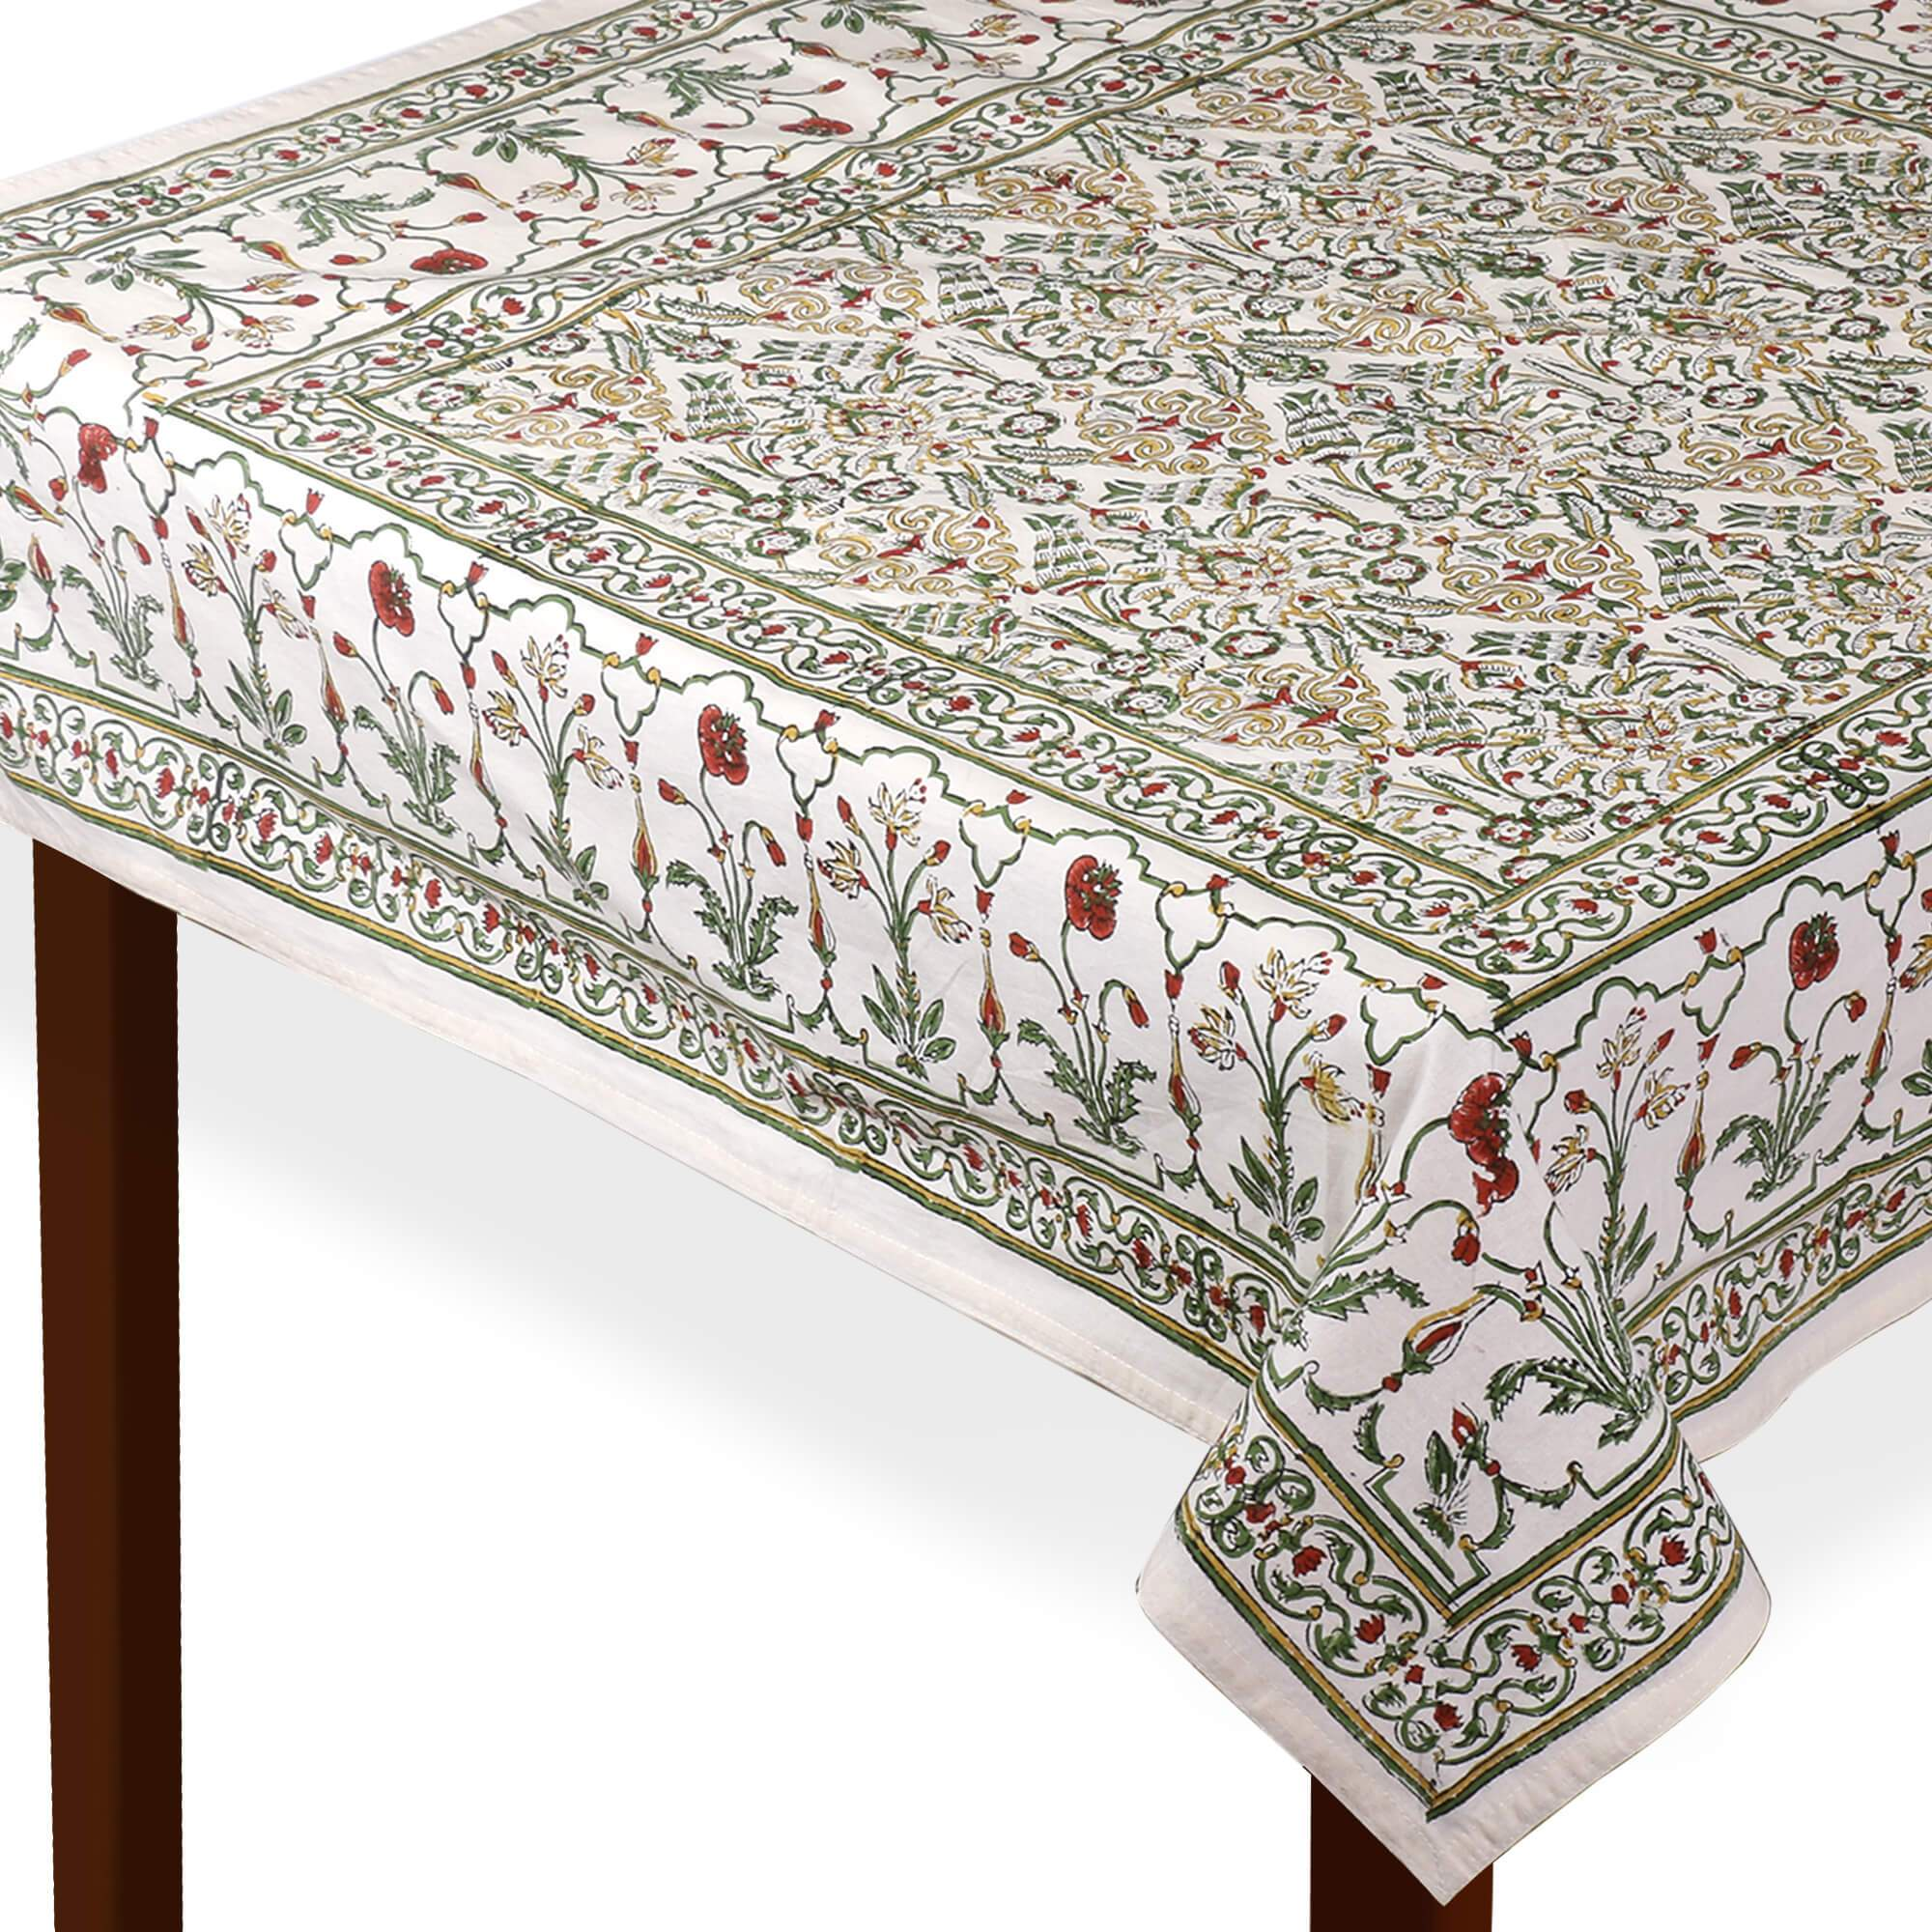 Jaipuri Square Cotton Table Cover - 7868